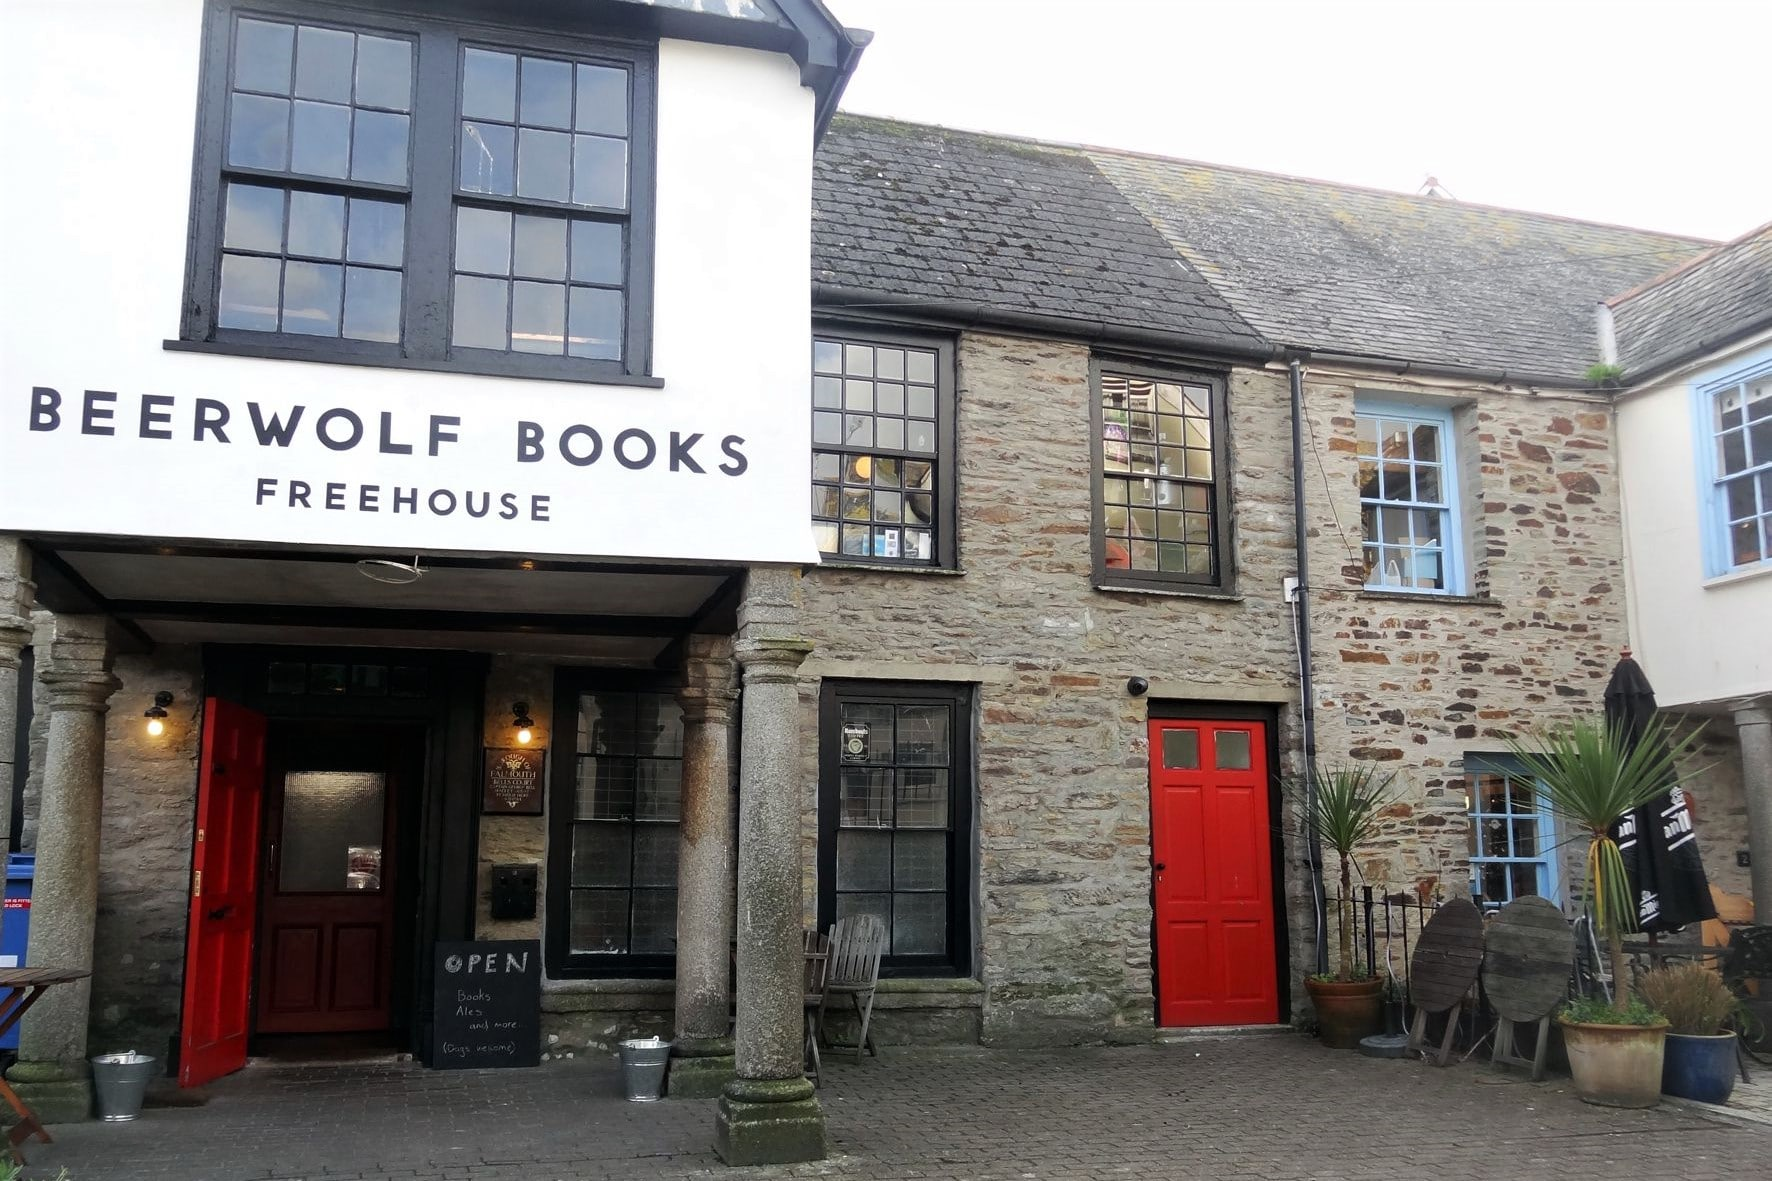 exterior-of-beerwolf-books-freehouse-in-falmouth